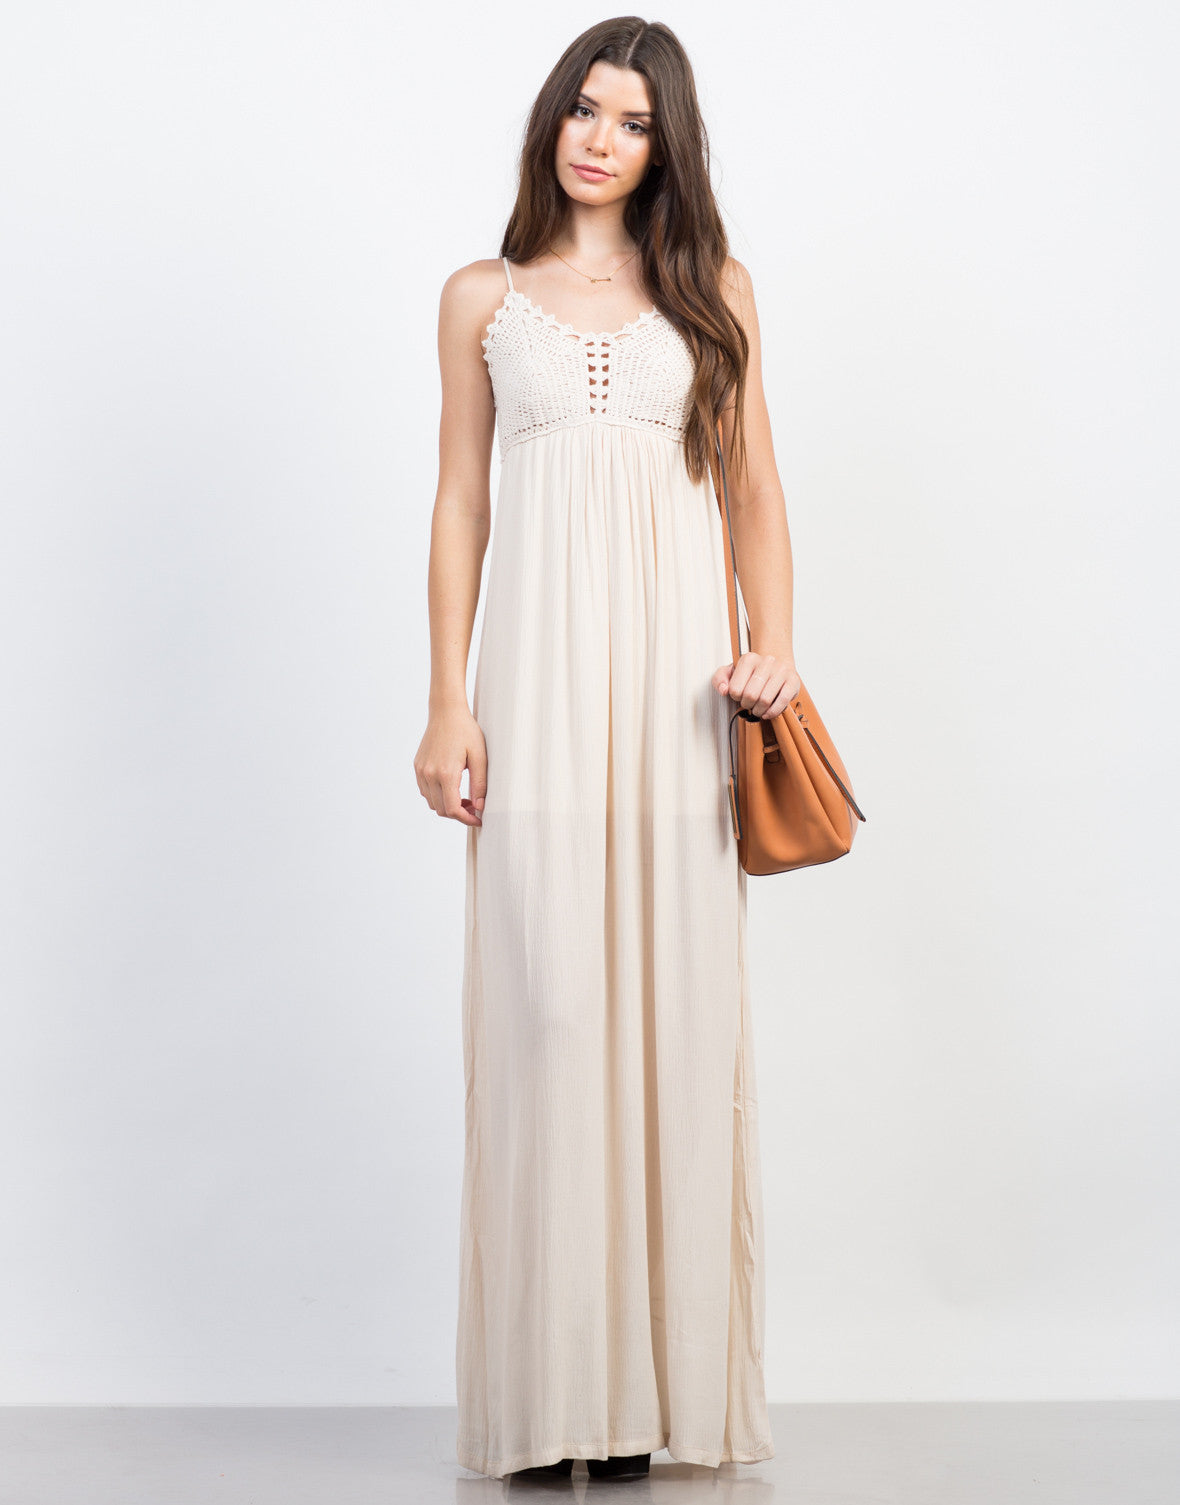 Front View of Summer Knit Maxi Dress